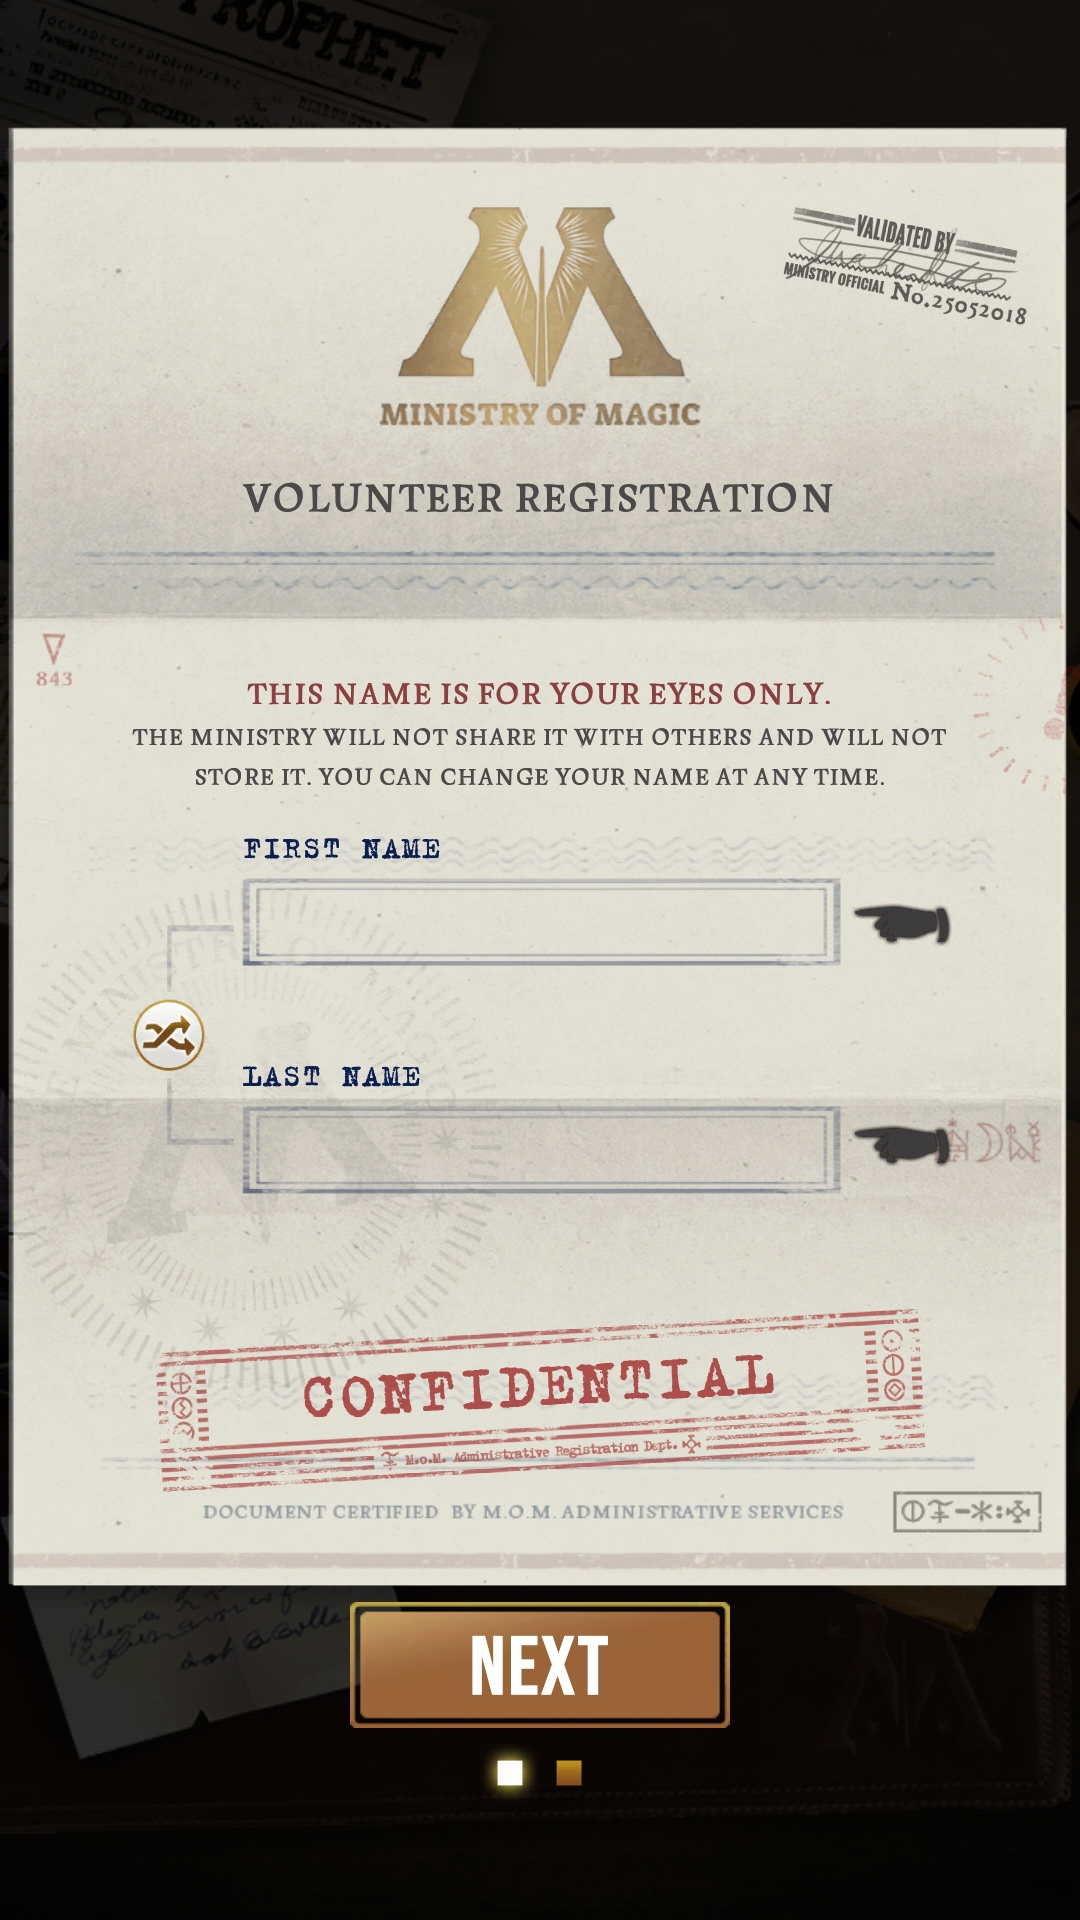 When you first download the game, you are asked to register as a volunteer for the Ministry of Magic.